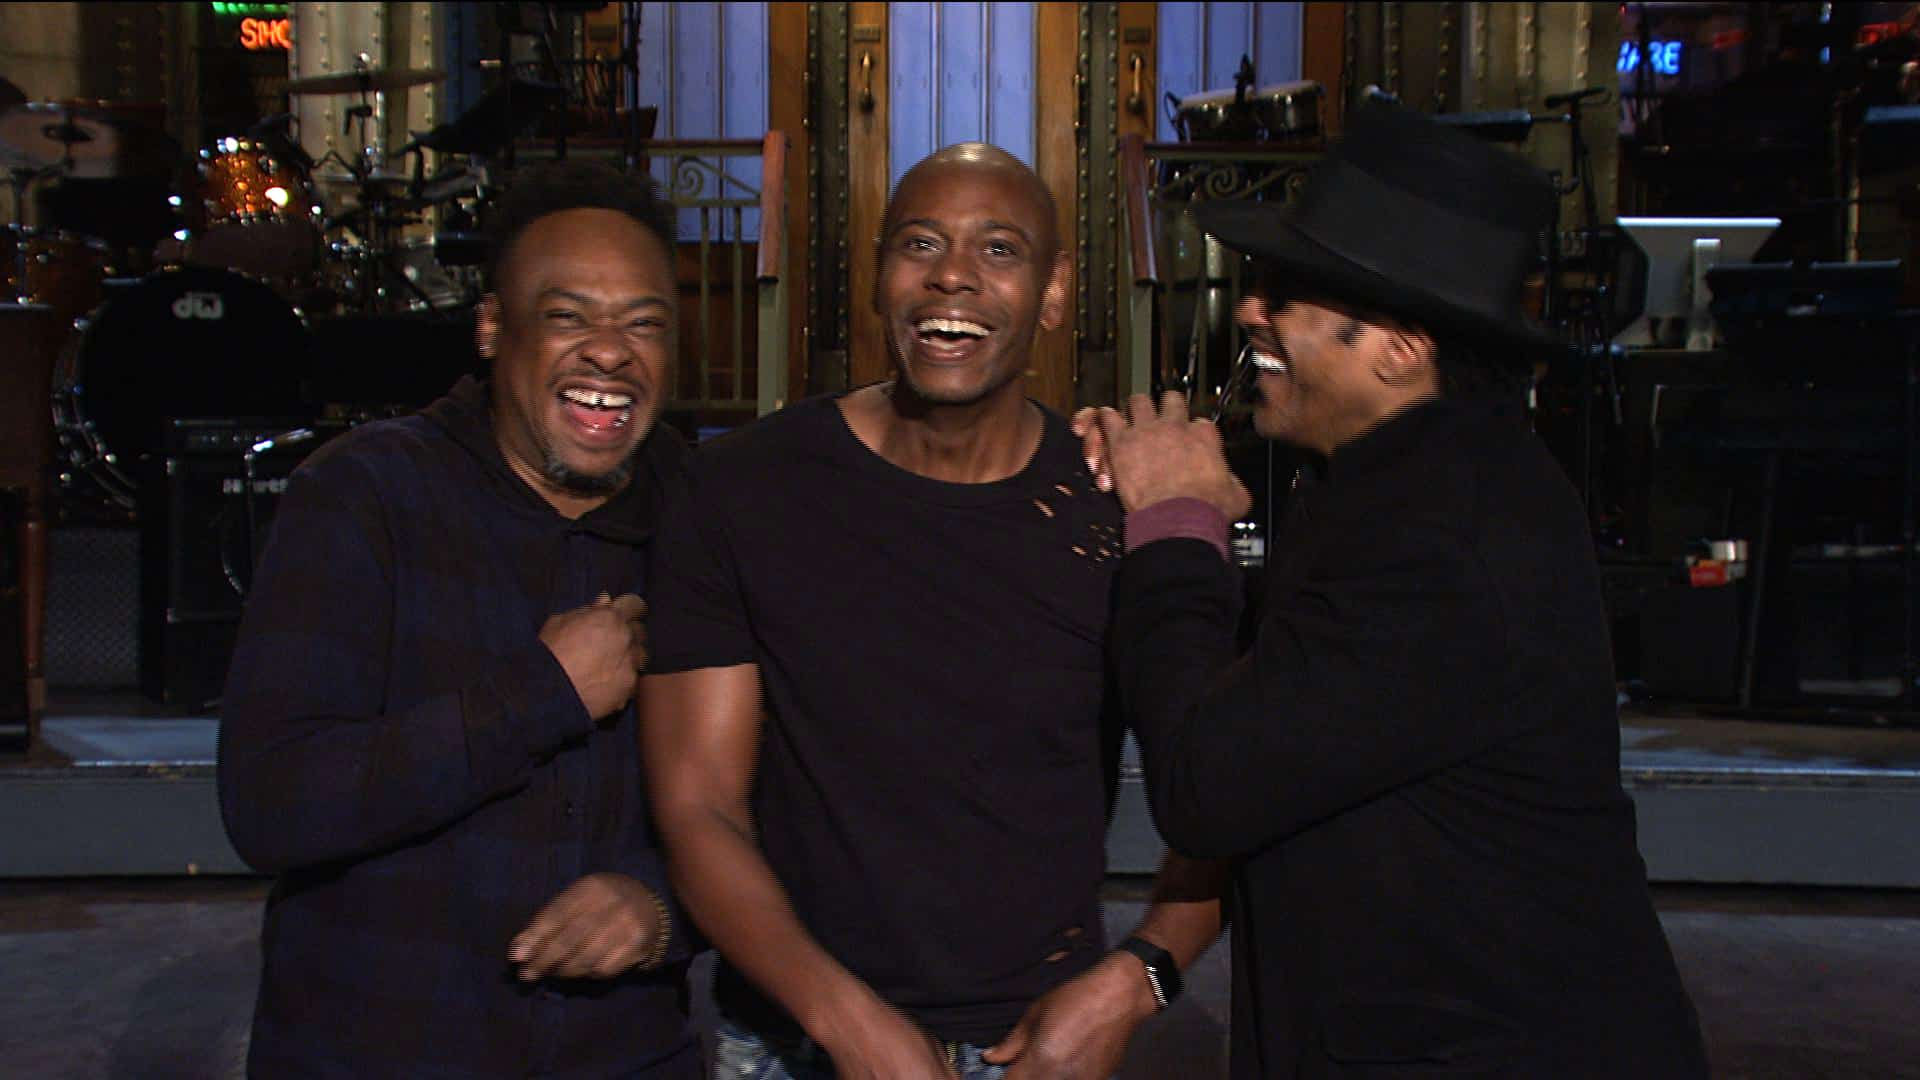 161110_3423651_SNL_Host_Dave_Chappelle_Tells_A_Tribe_Called